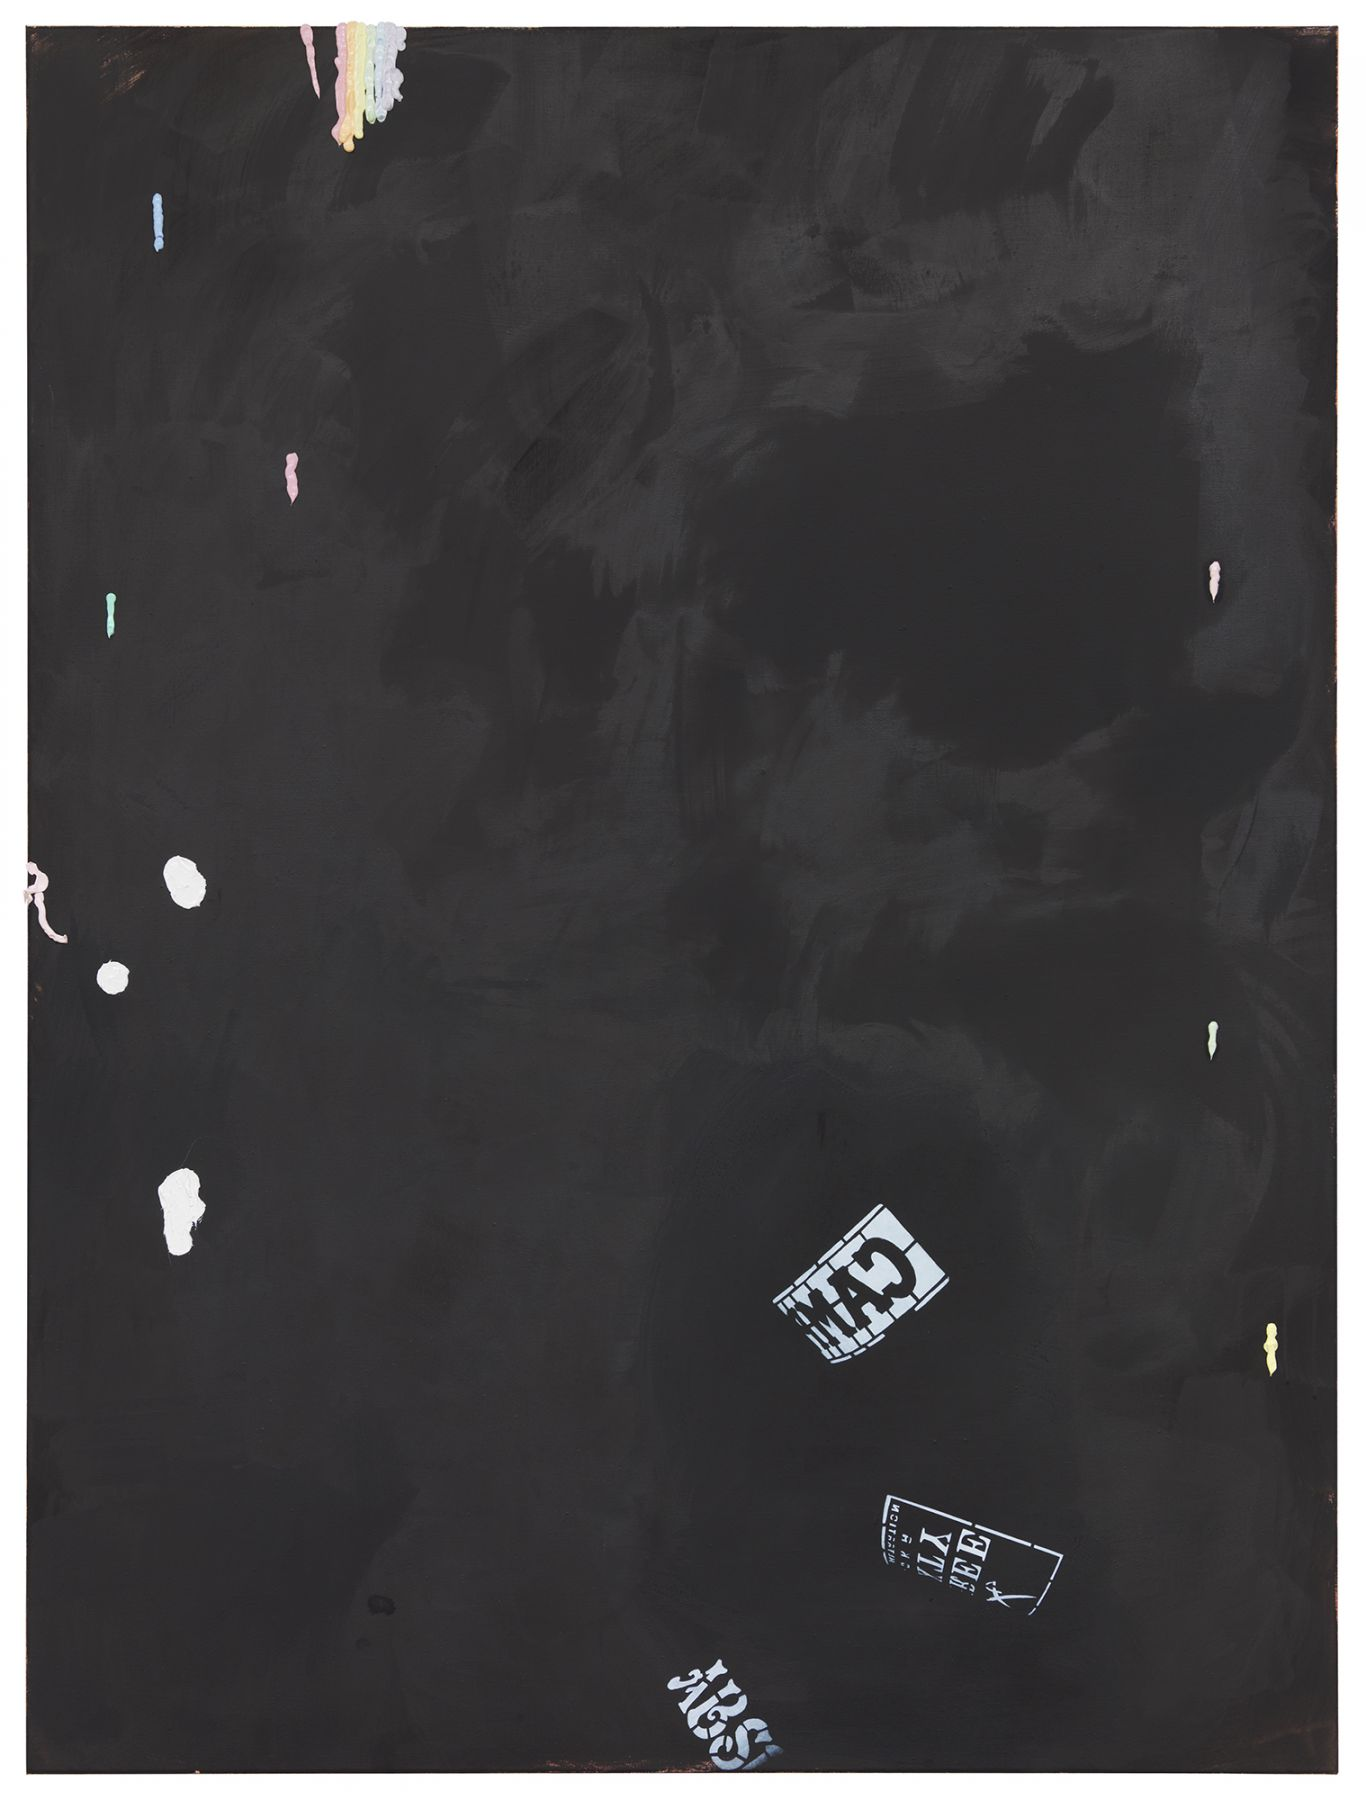 Monika Baer on hold (2), 2015 Acrylic, ink, oil on canvas 70 3/4 x 53 1/4 inches (180 x 135 cm)